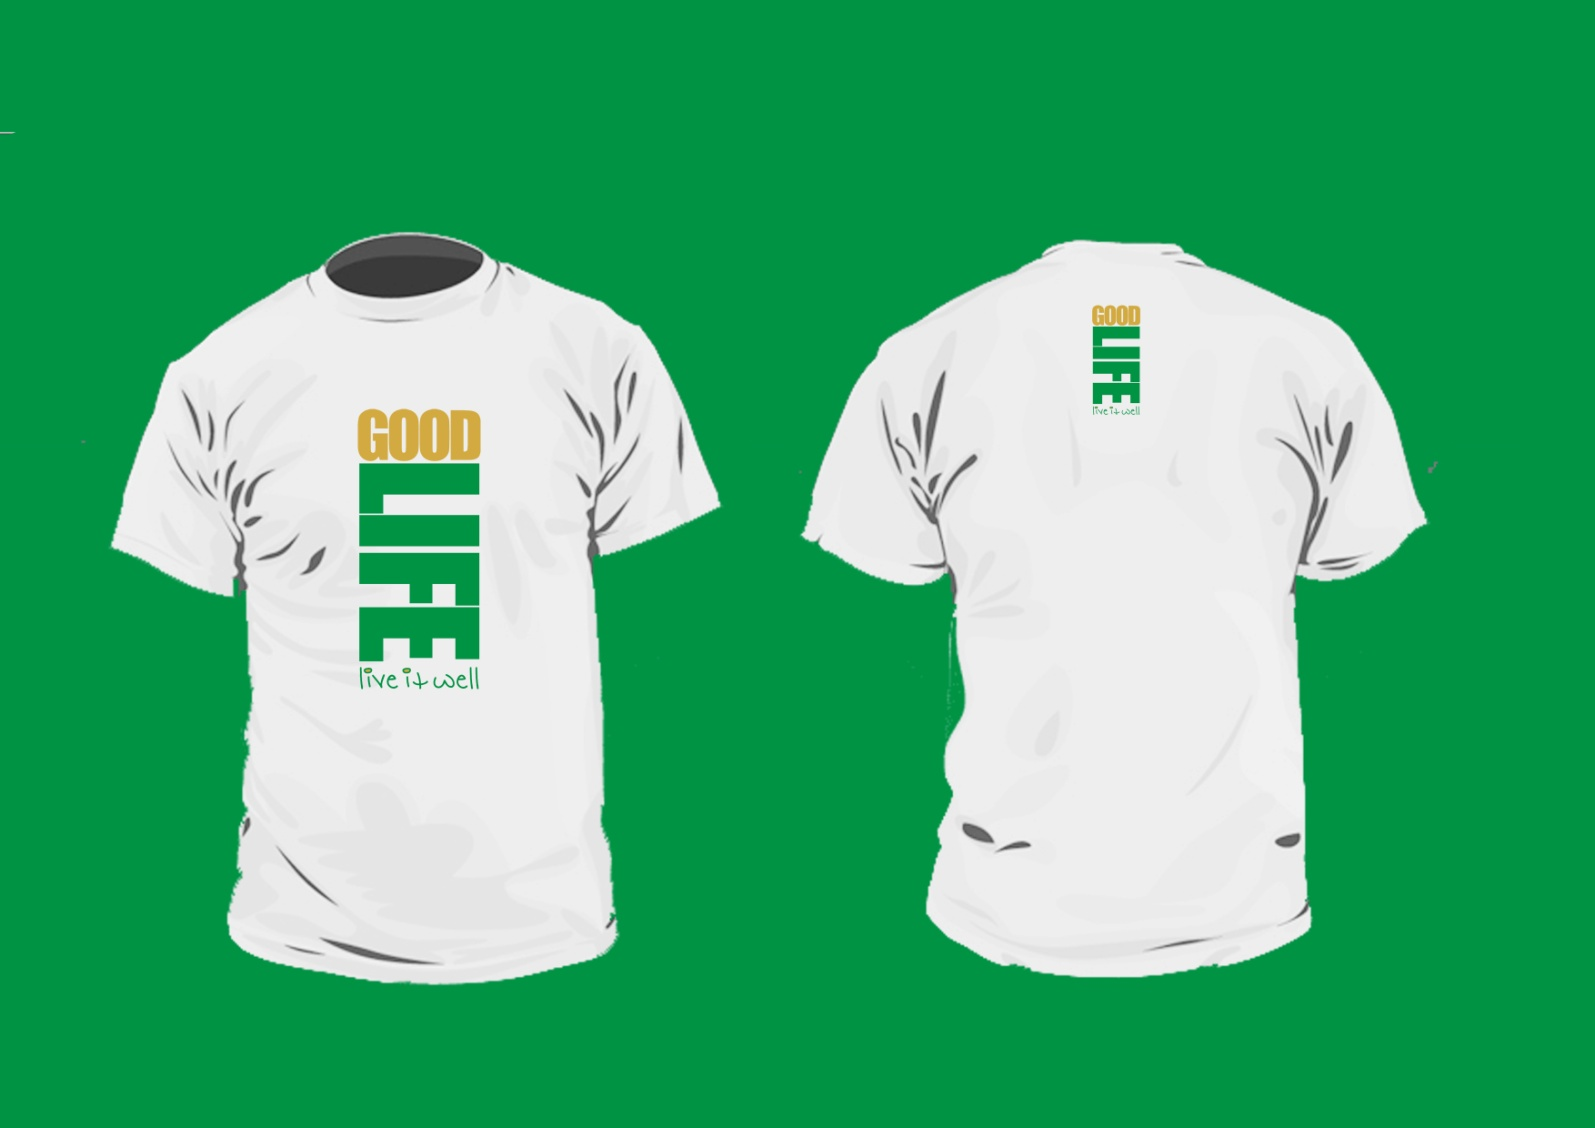 Goodlife ghana t shirts the health compass for Johns hopkins university t shirts